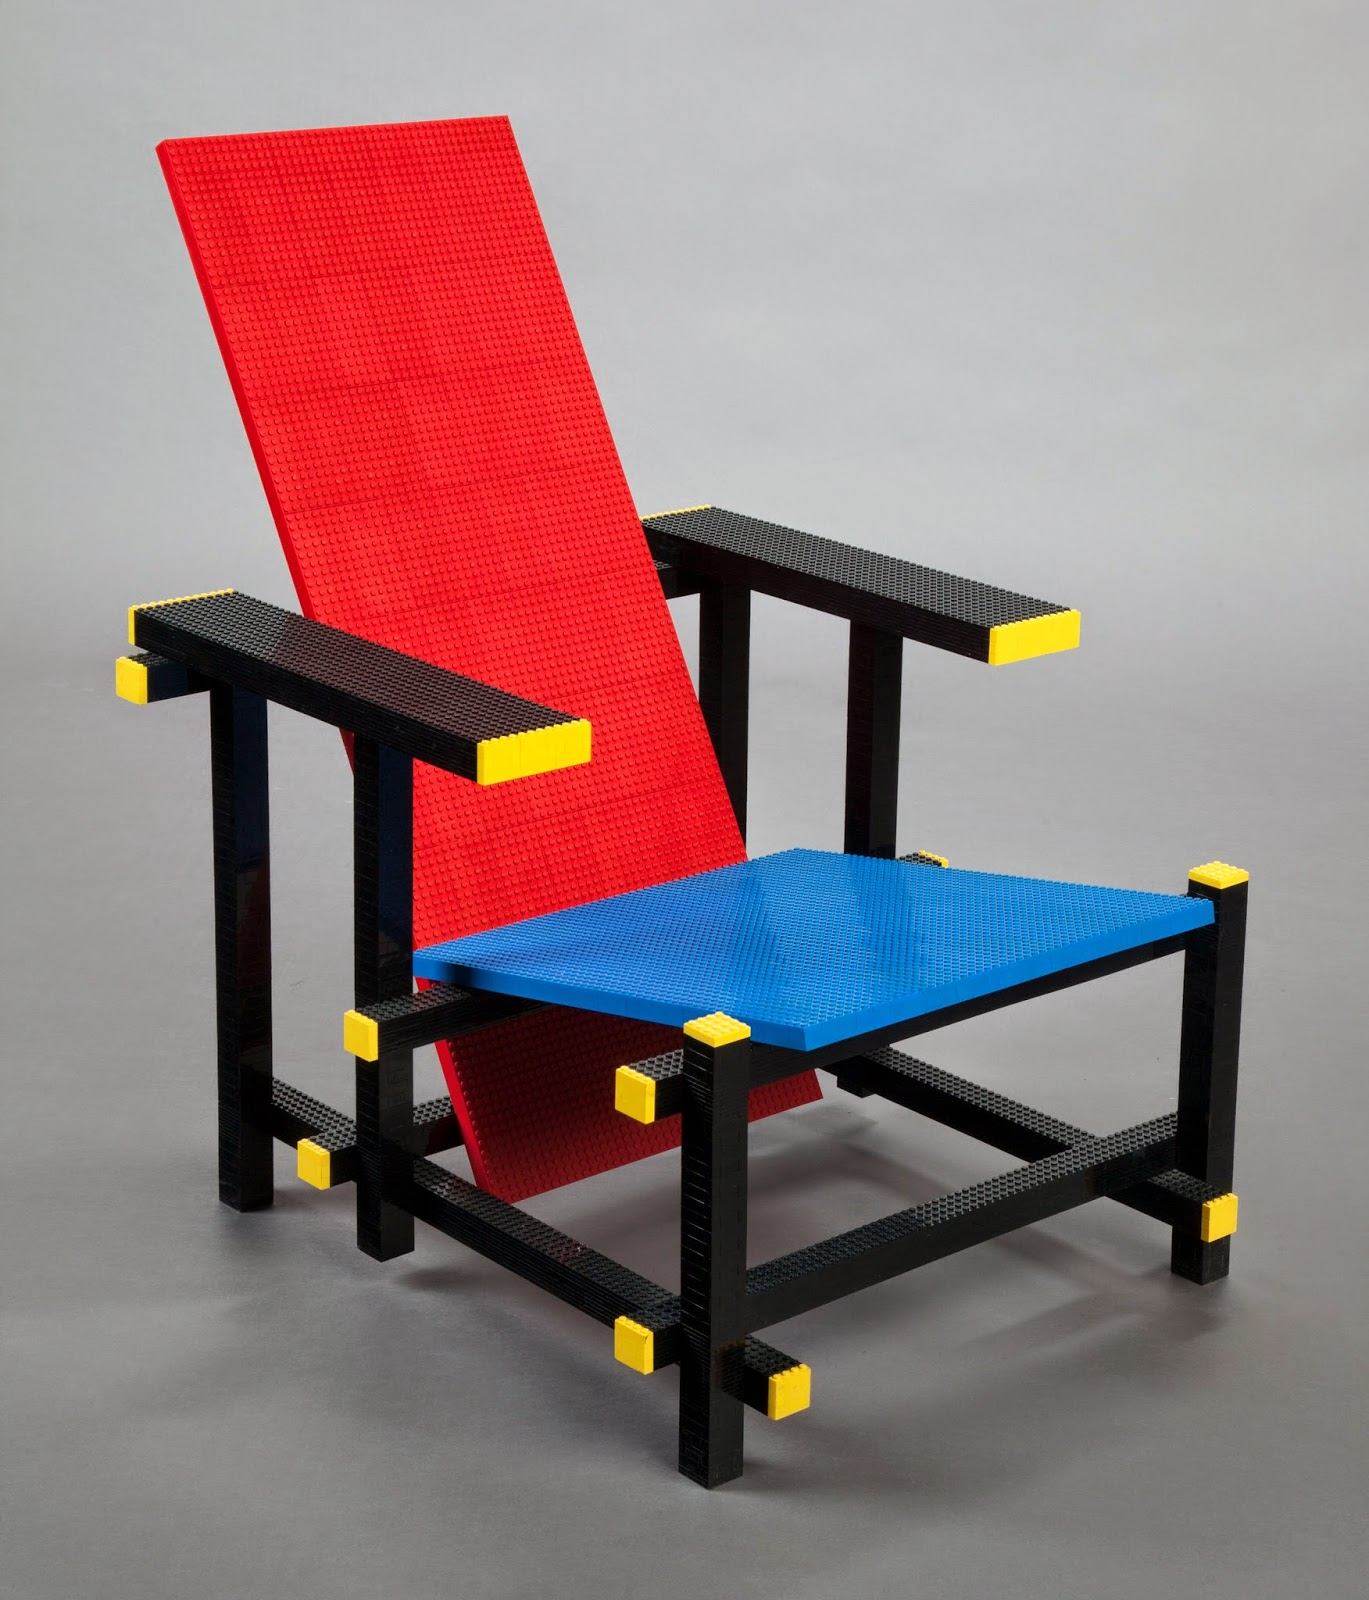 Mario minales 2007 red blue lego chair opening bid 5000